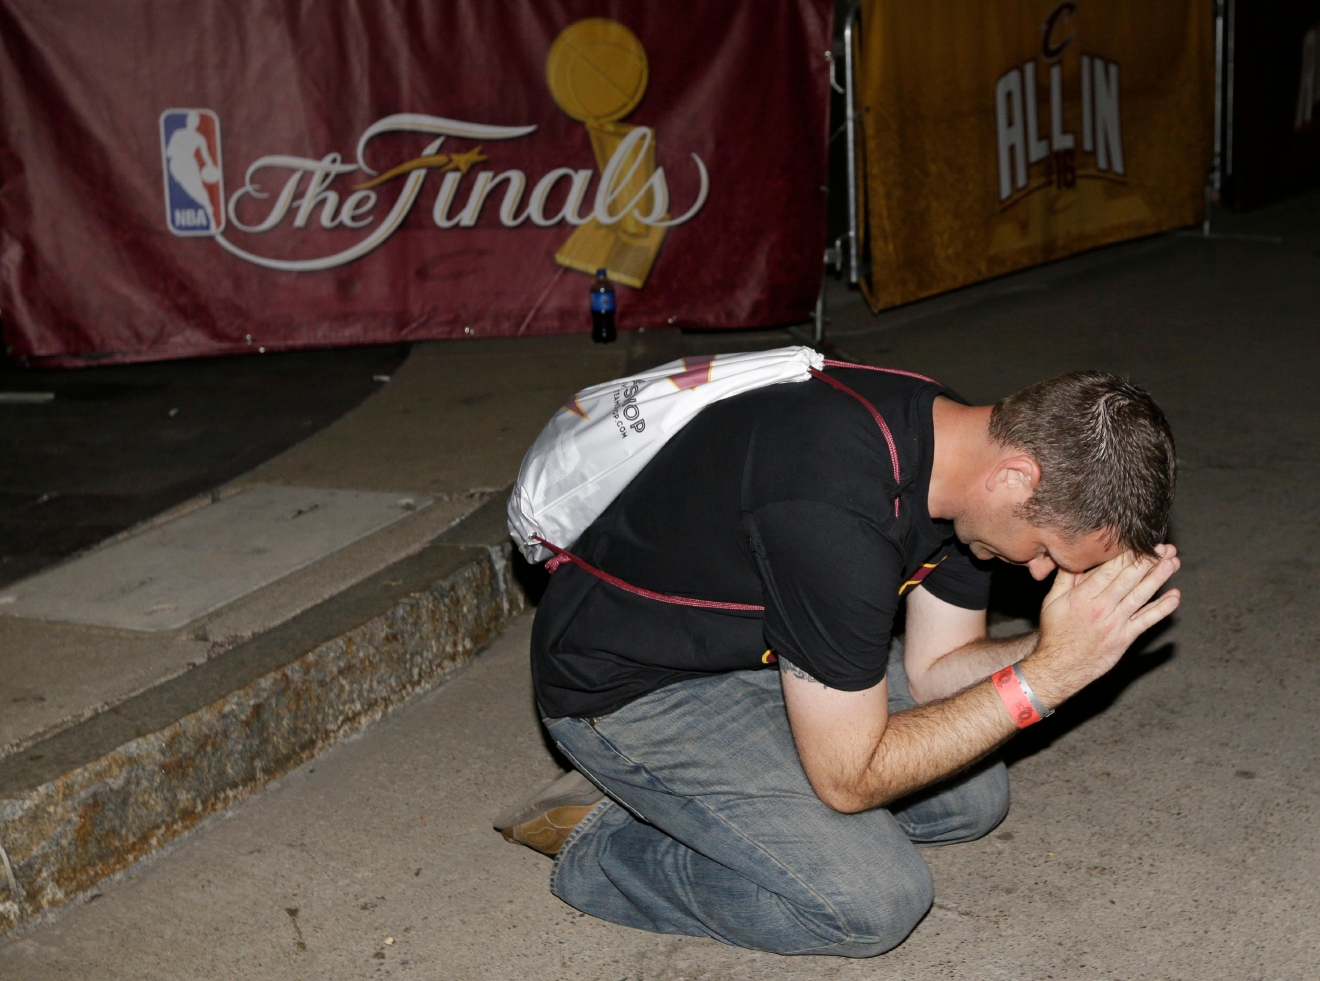 Brian Wilson prays in the final minutes of Game 7 of the NBA basketball Finals between the Cleveland Cavaliers and the Golden State Warriors, Sunday, June 19, 2016, in Cleveland. The Cavaliers won 93-89. (AP Photo/Tony Dejak)